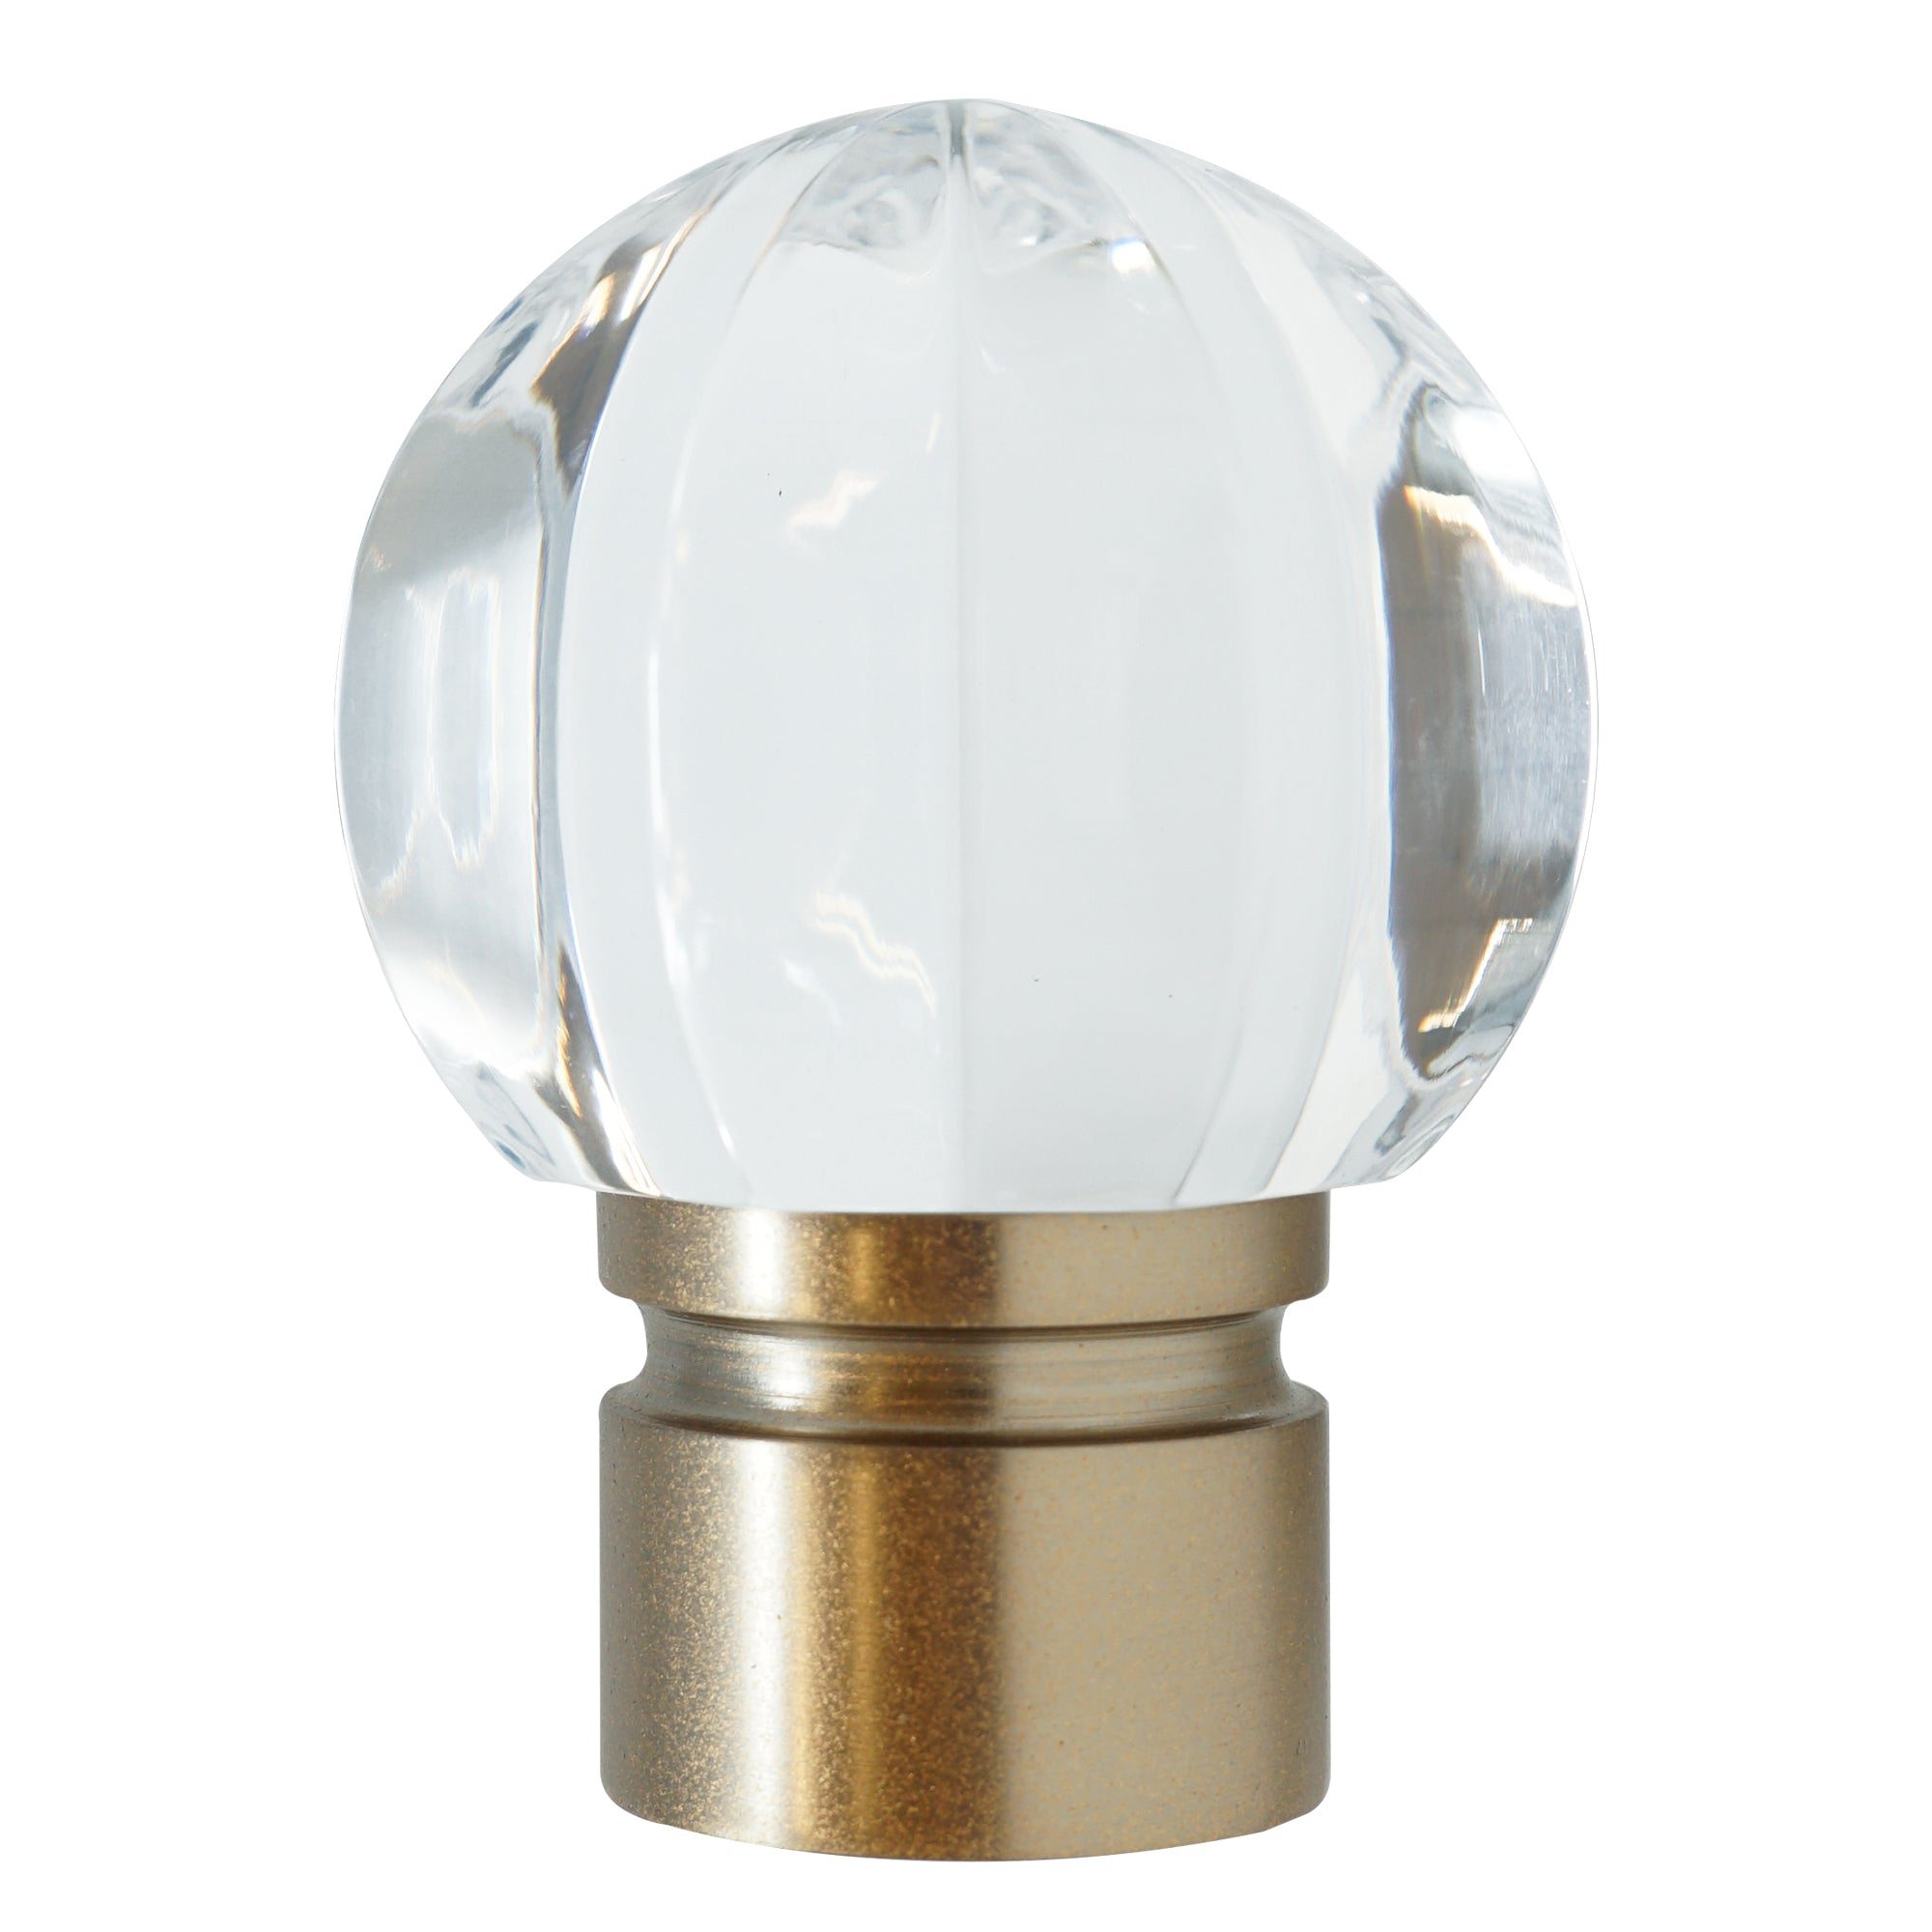 Acrylic Ball Finial - Rose Gold Finish